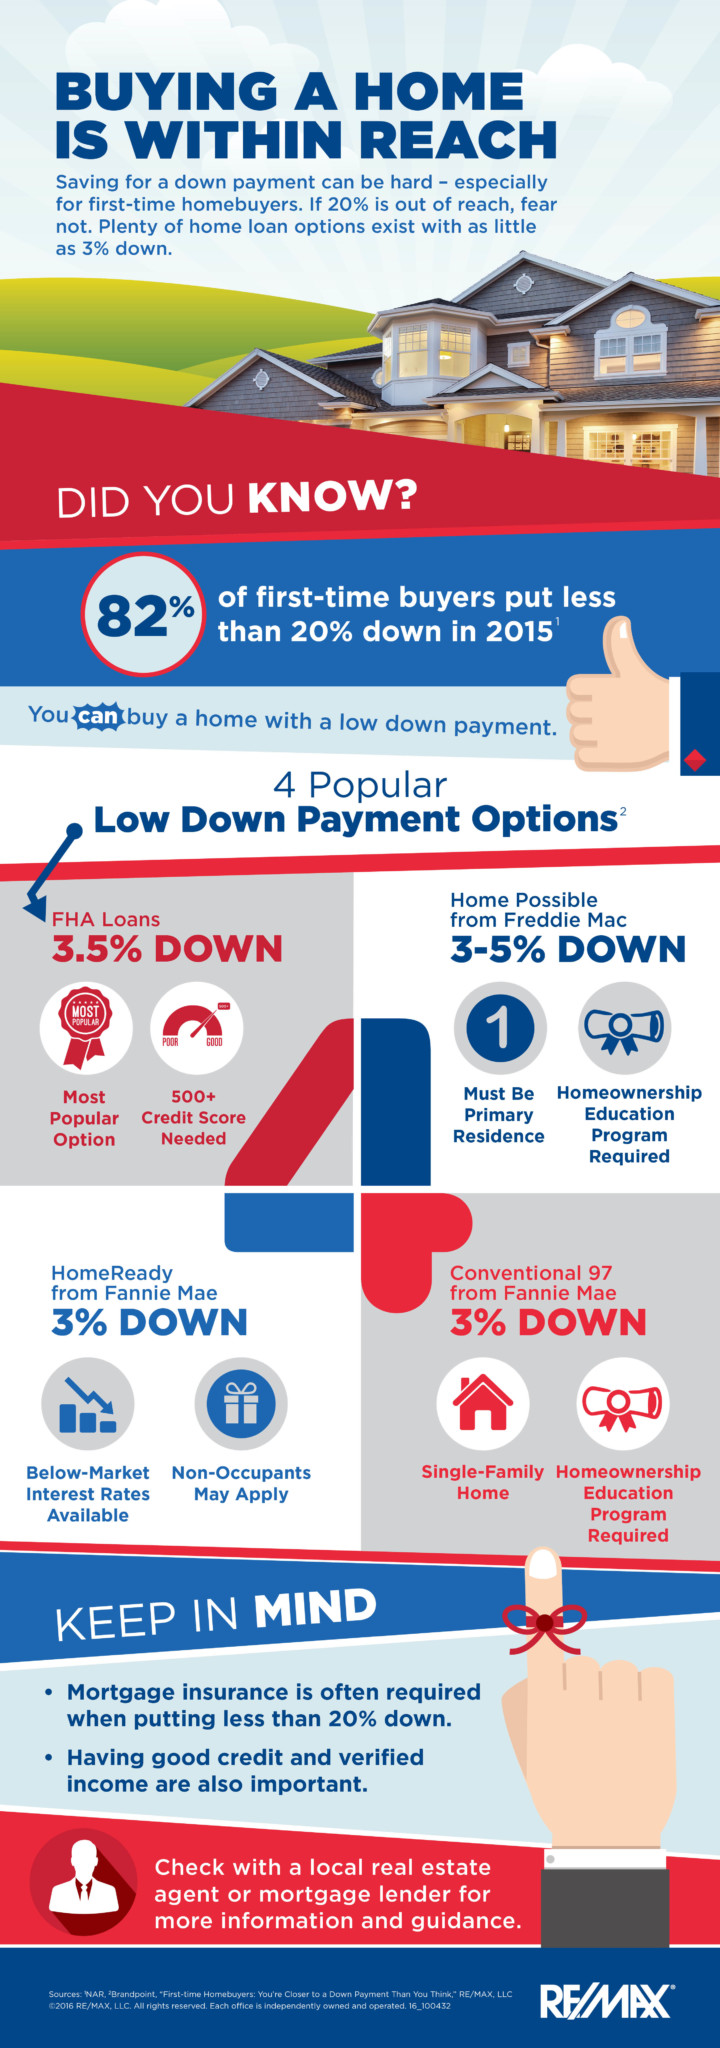 four popular low down payment options